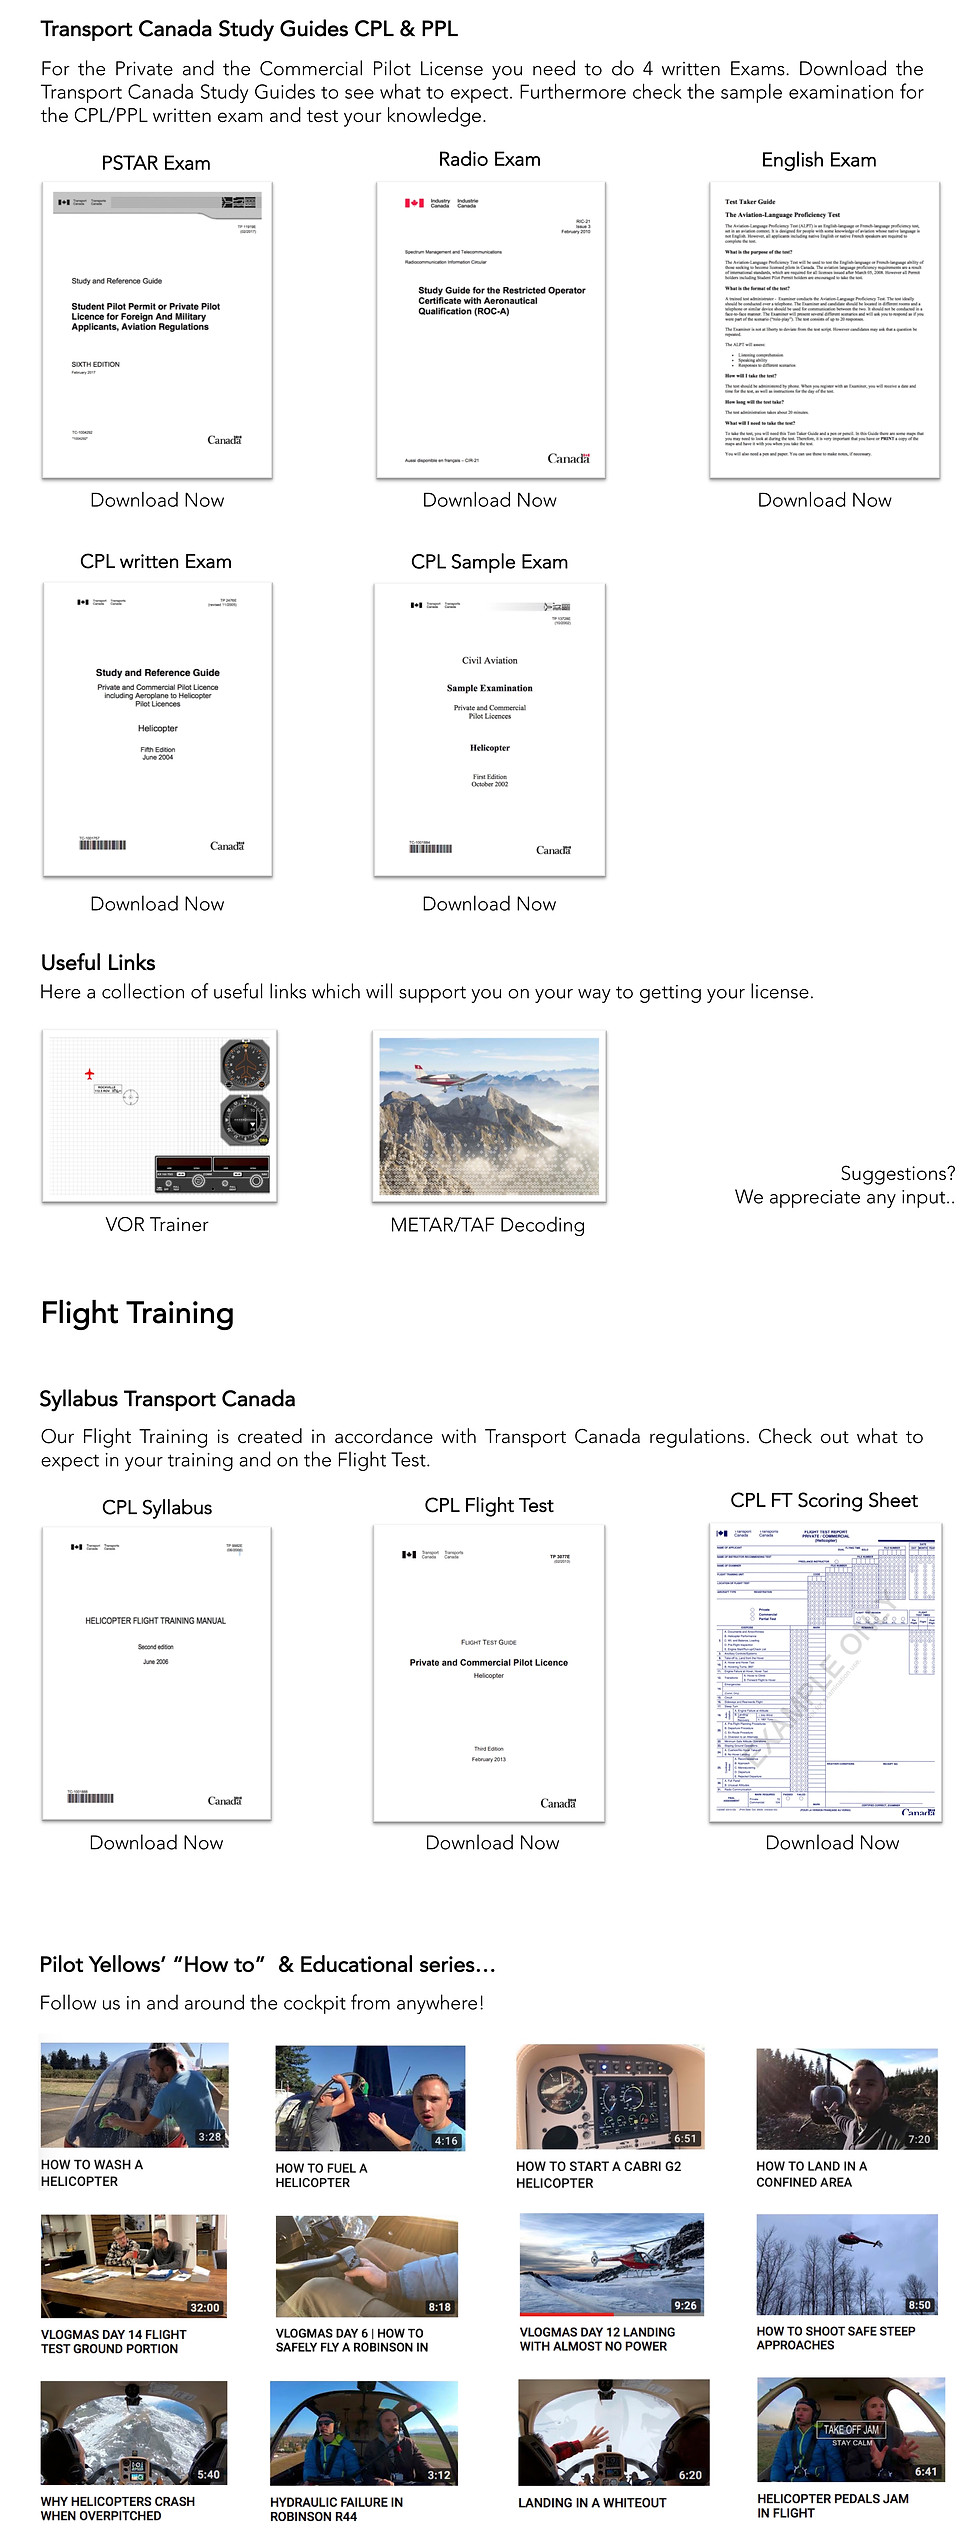 Transport Canada helicopter license exams